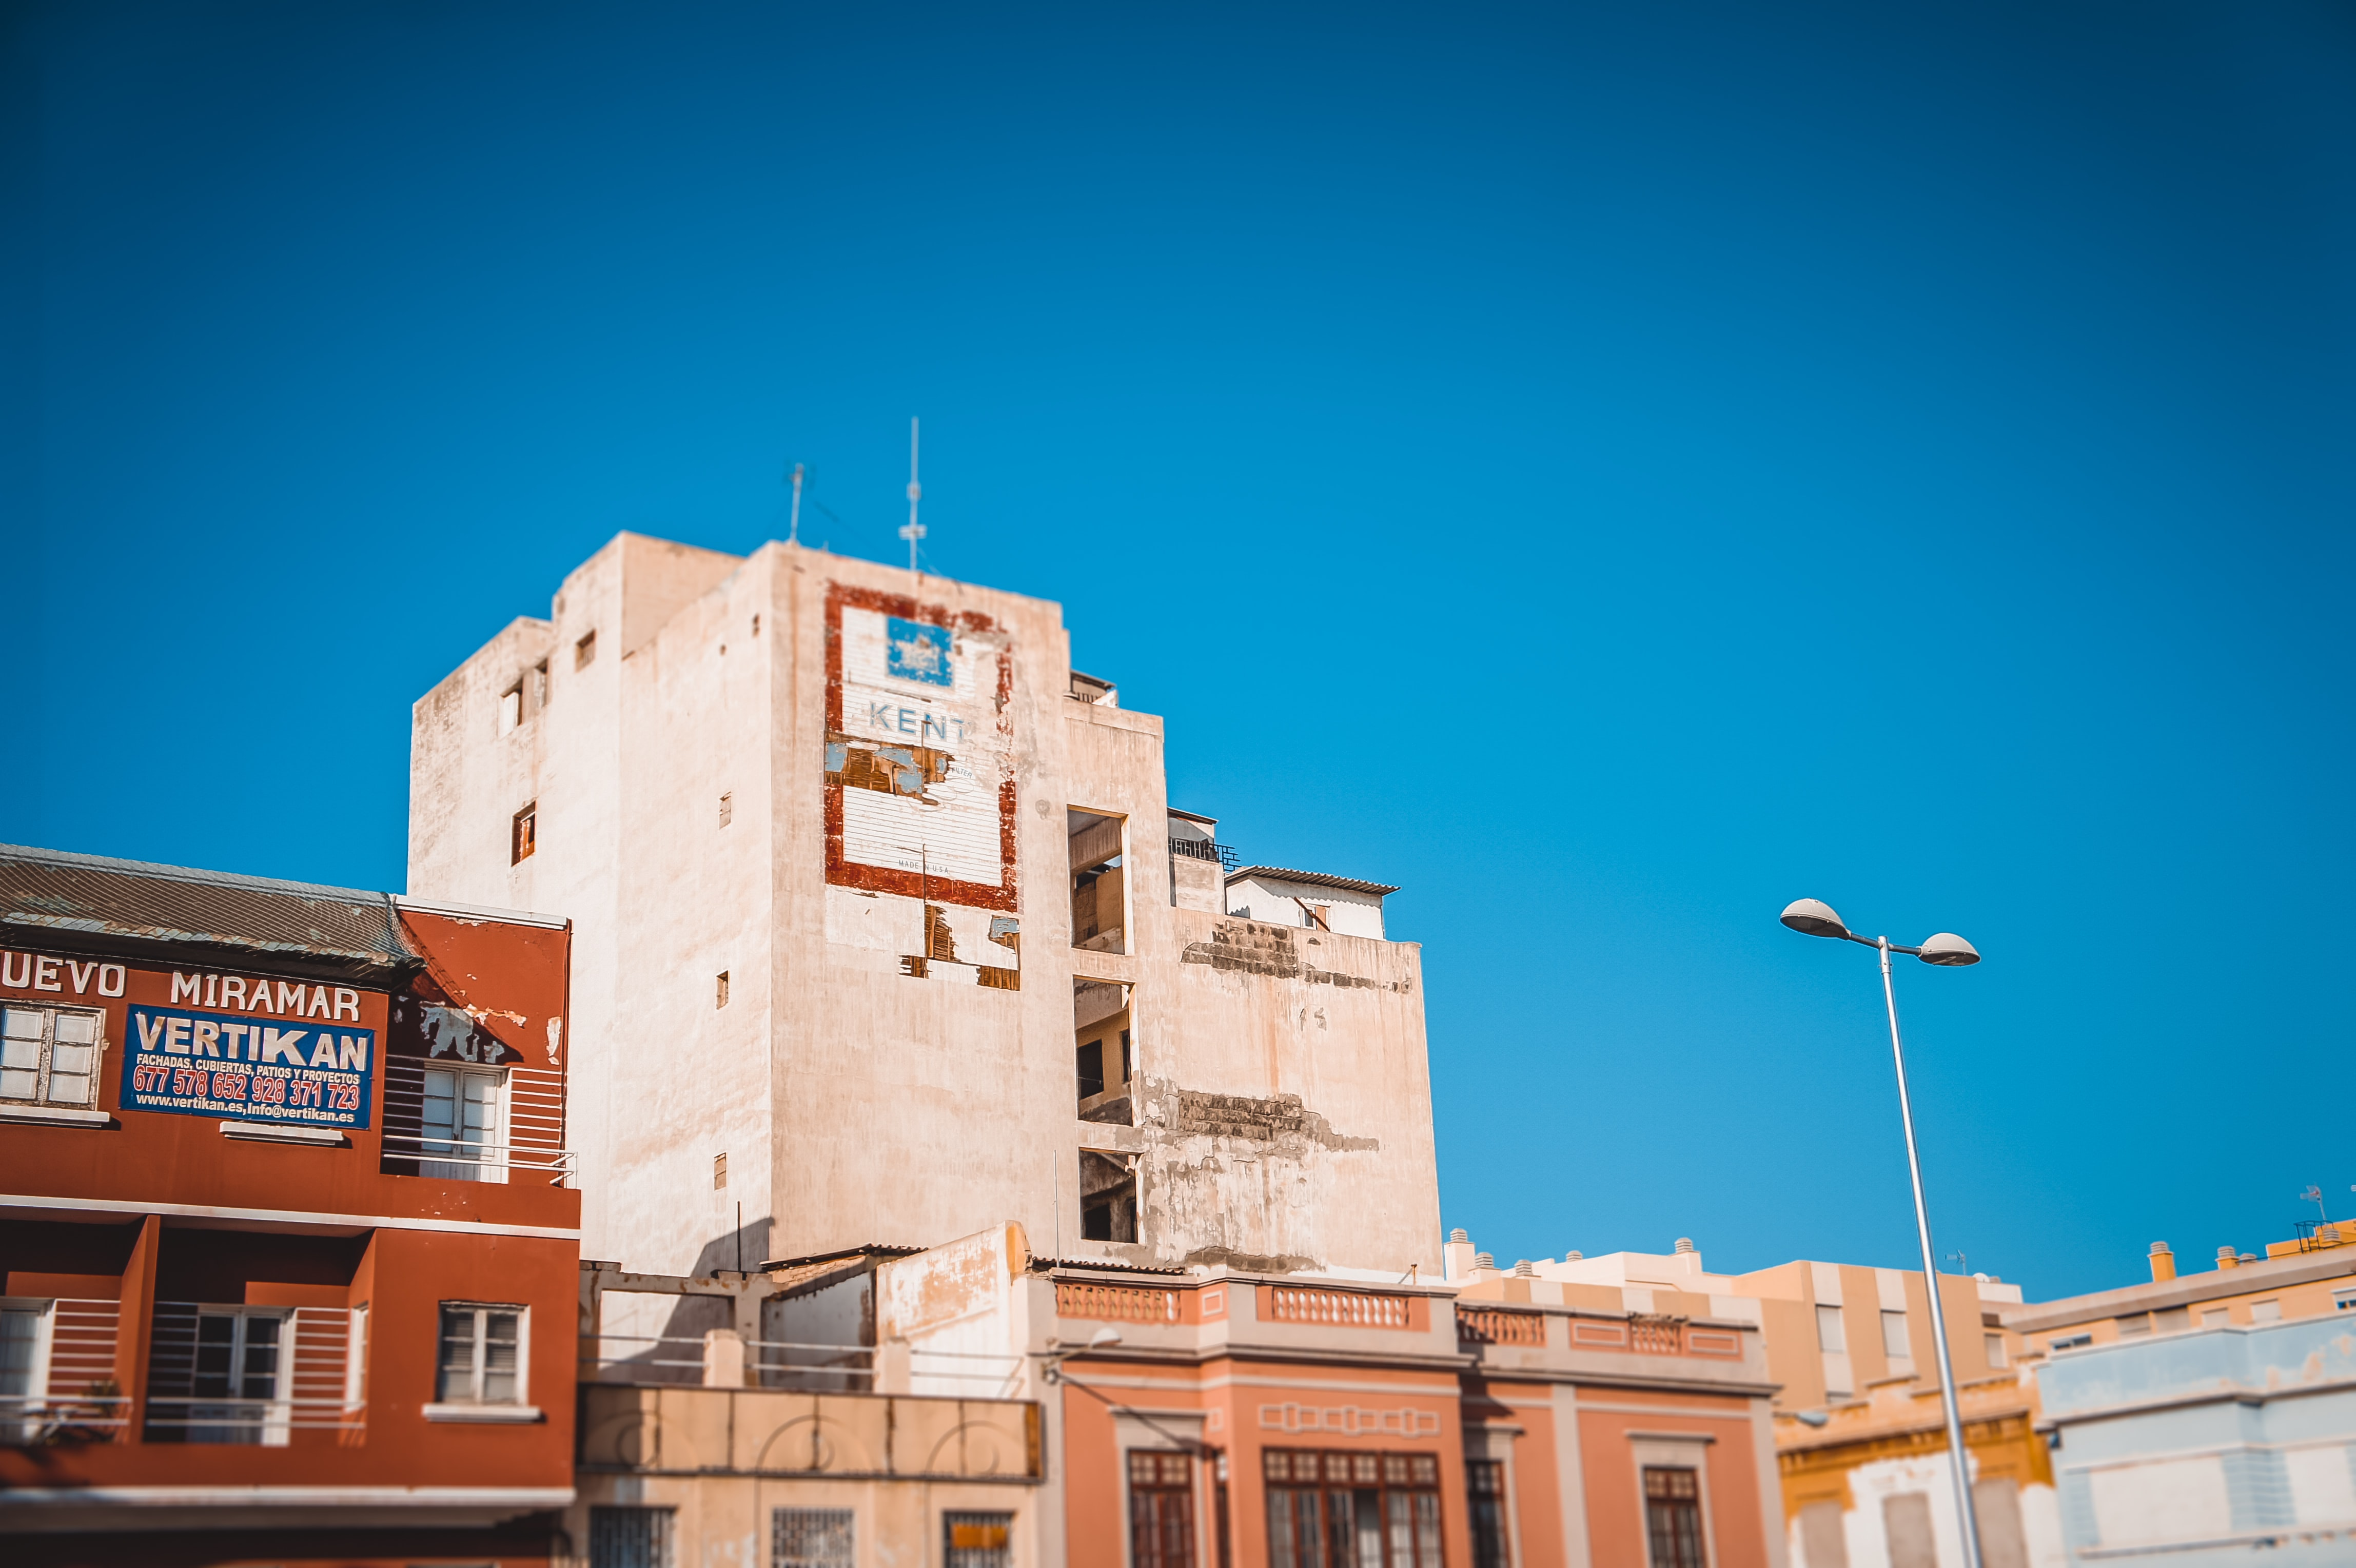 brown and white concrete buildings under blue sky at daytime